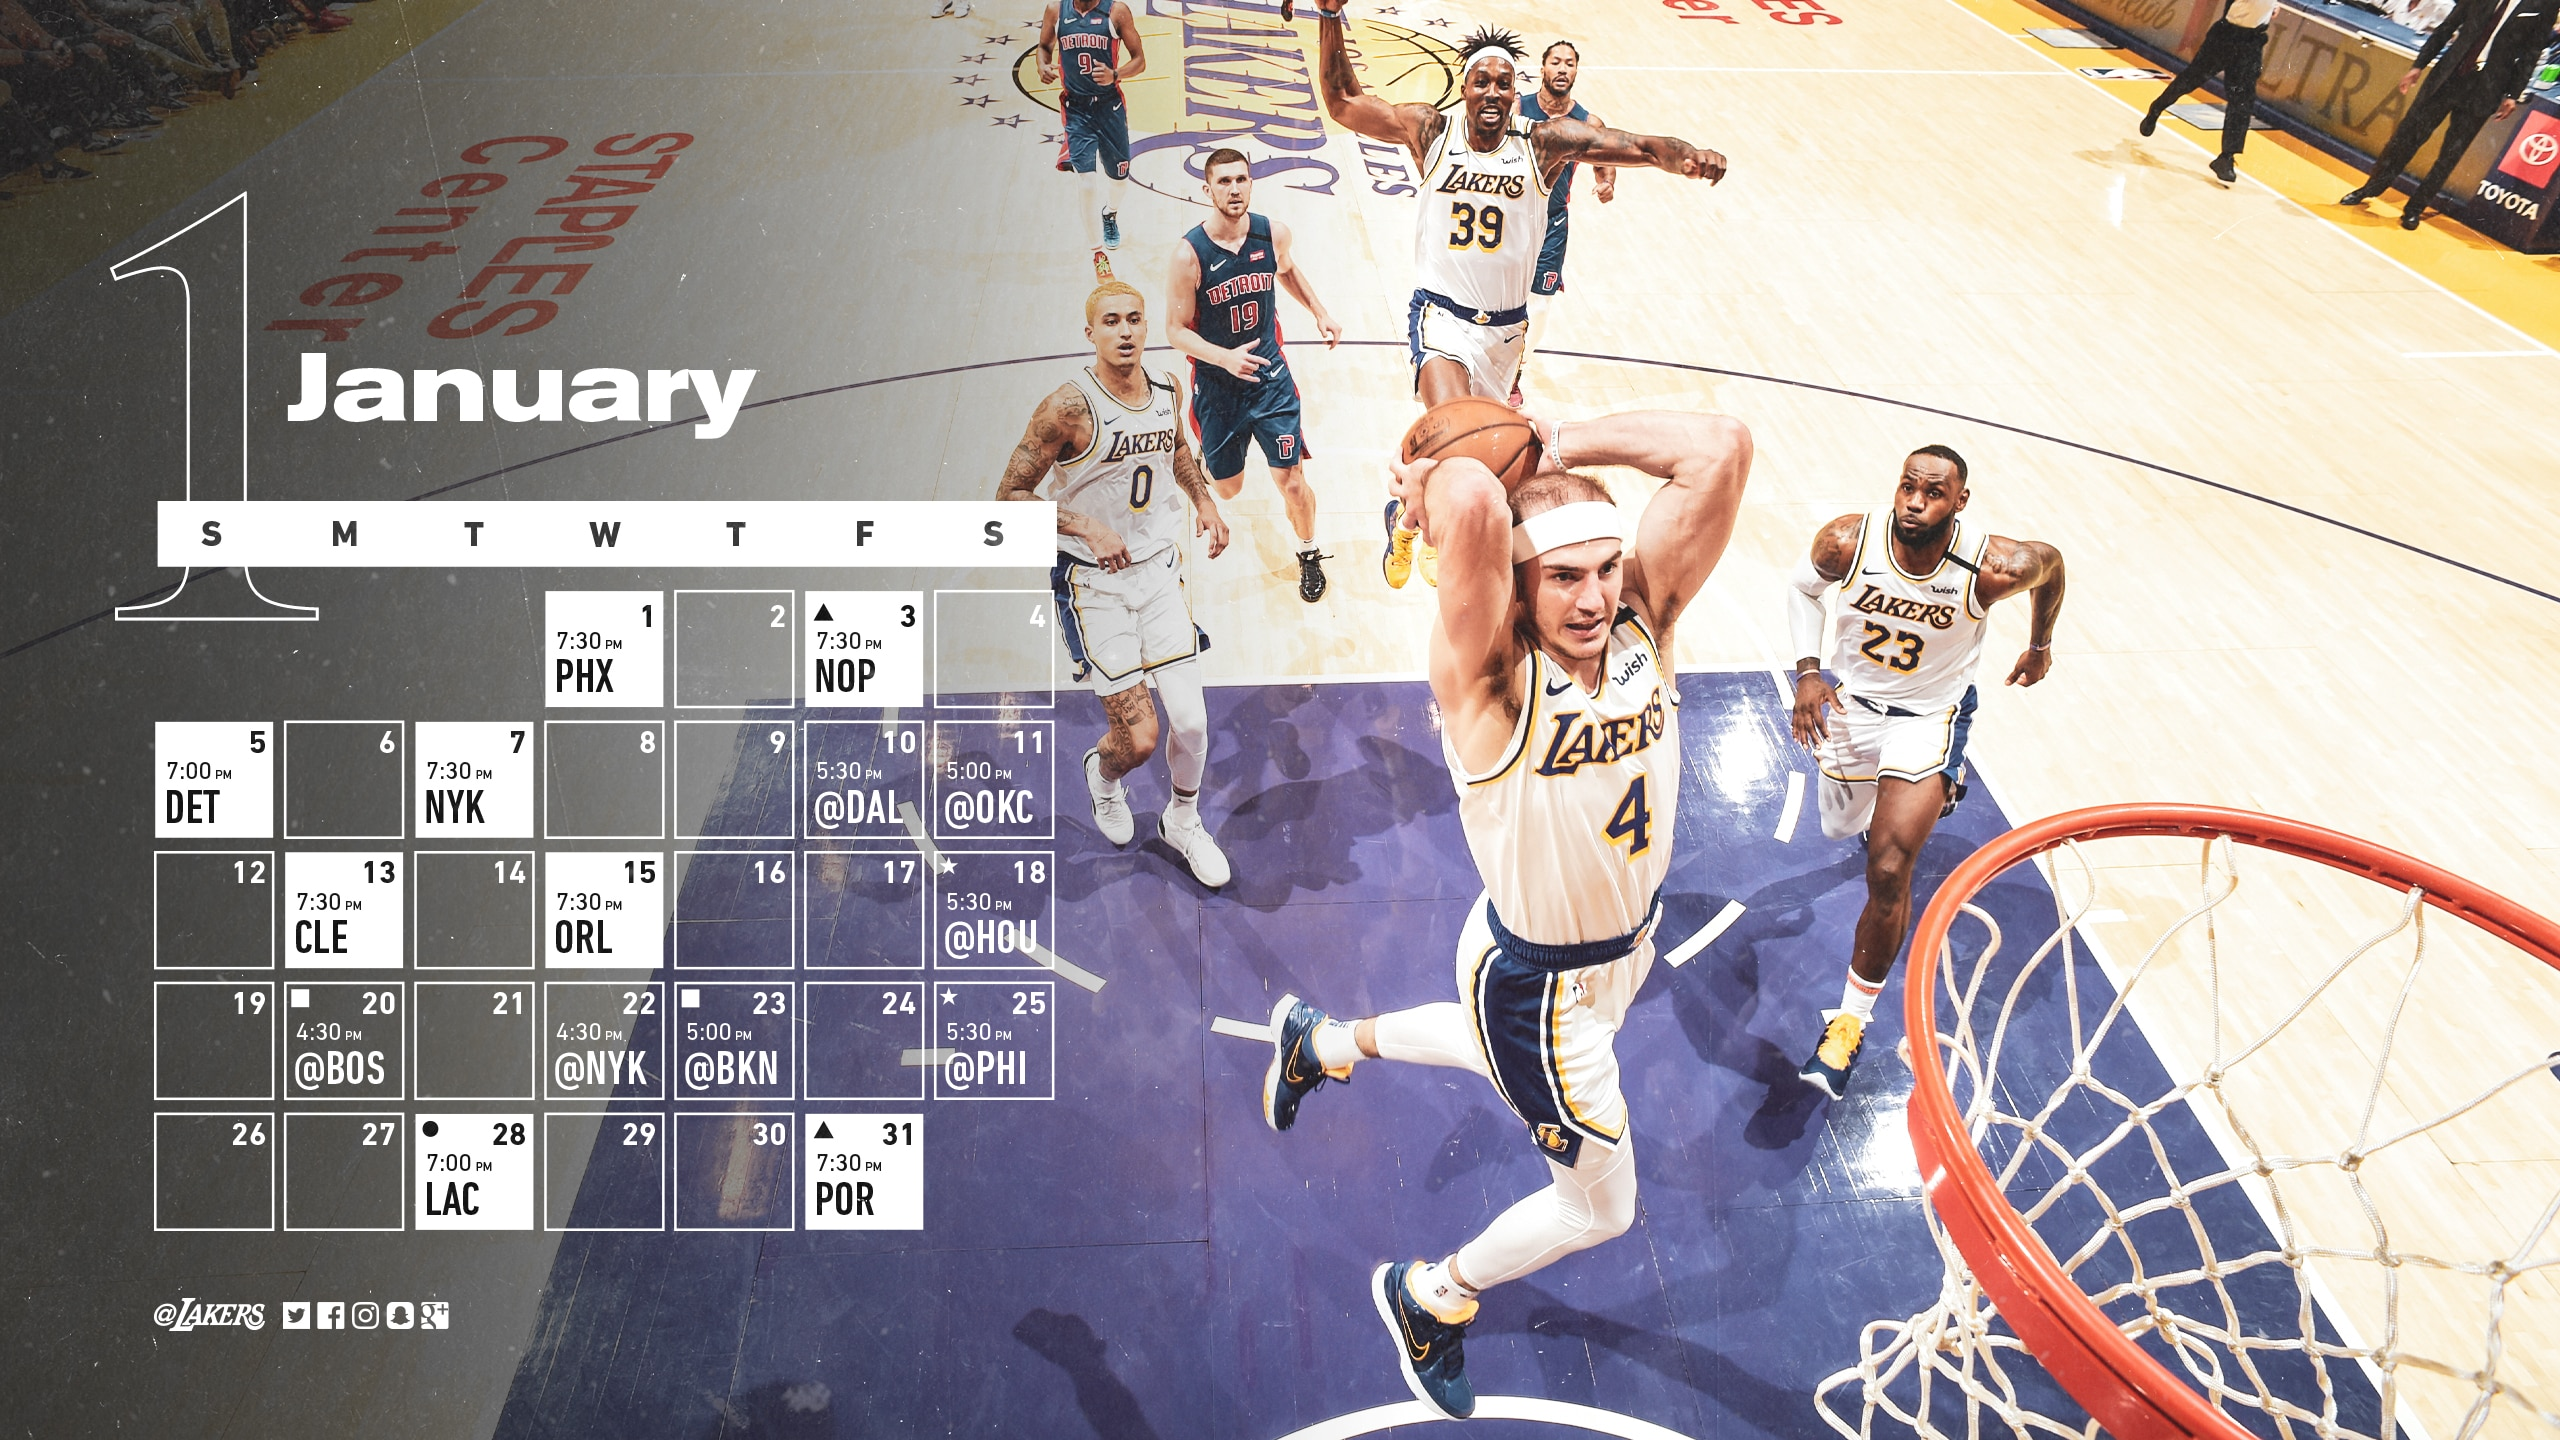 Schedule Wallpaper